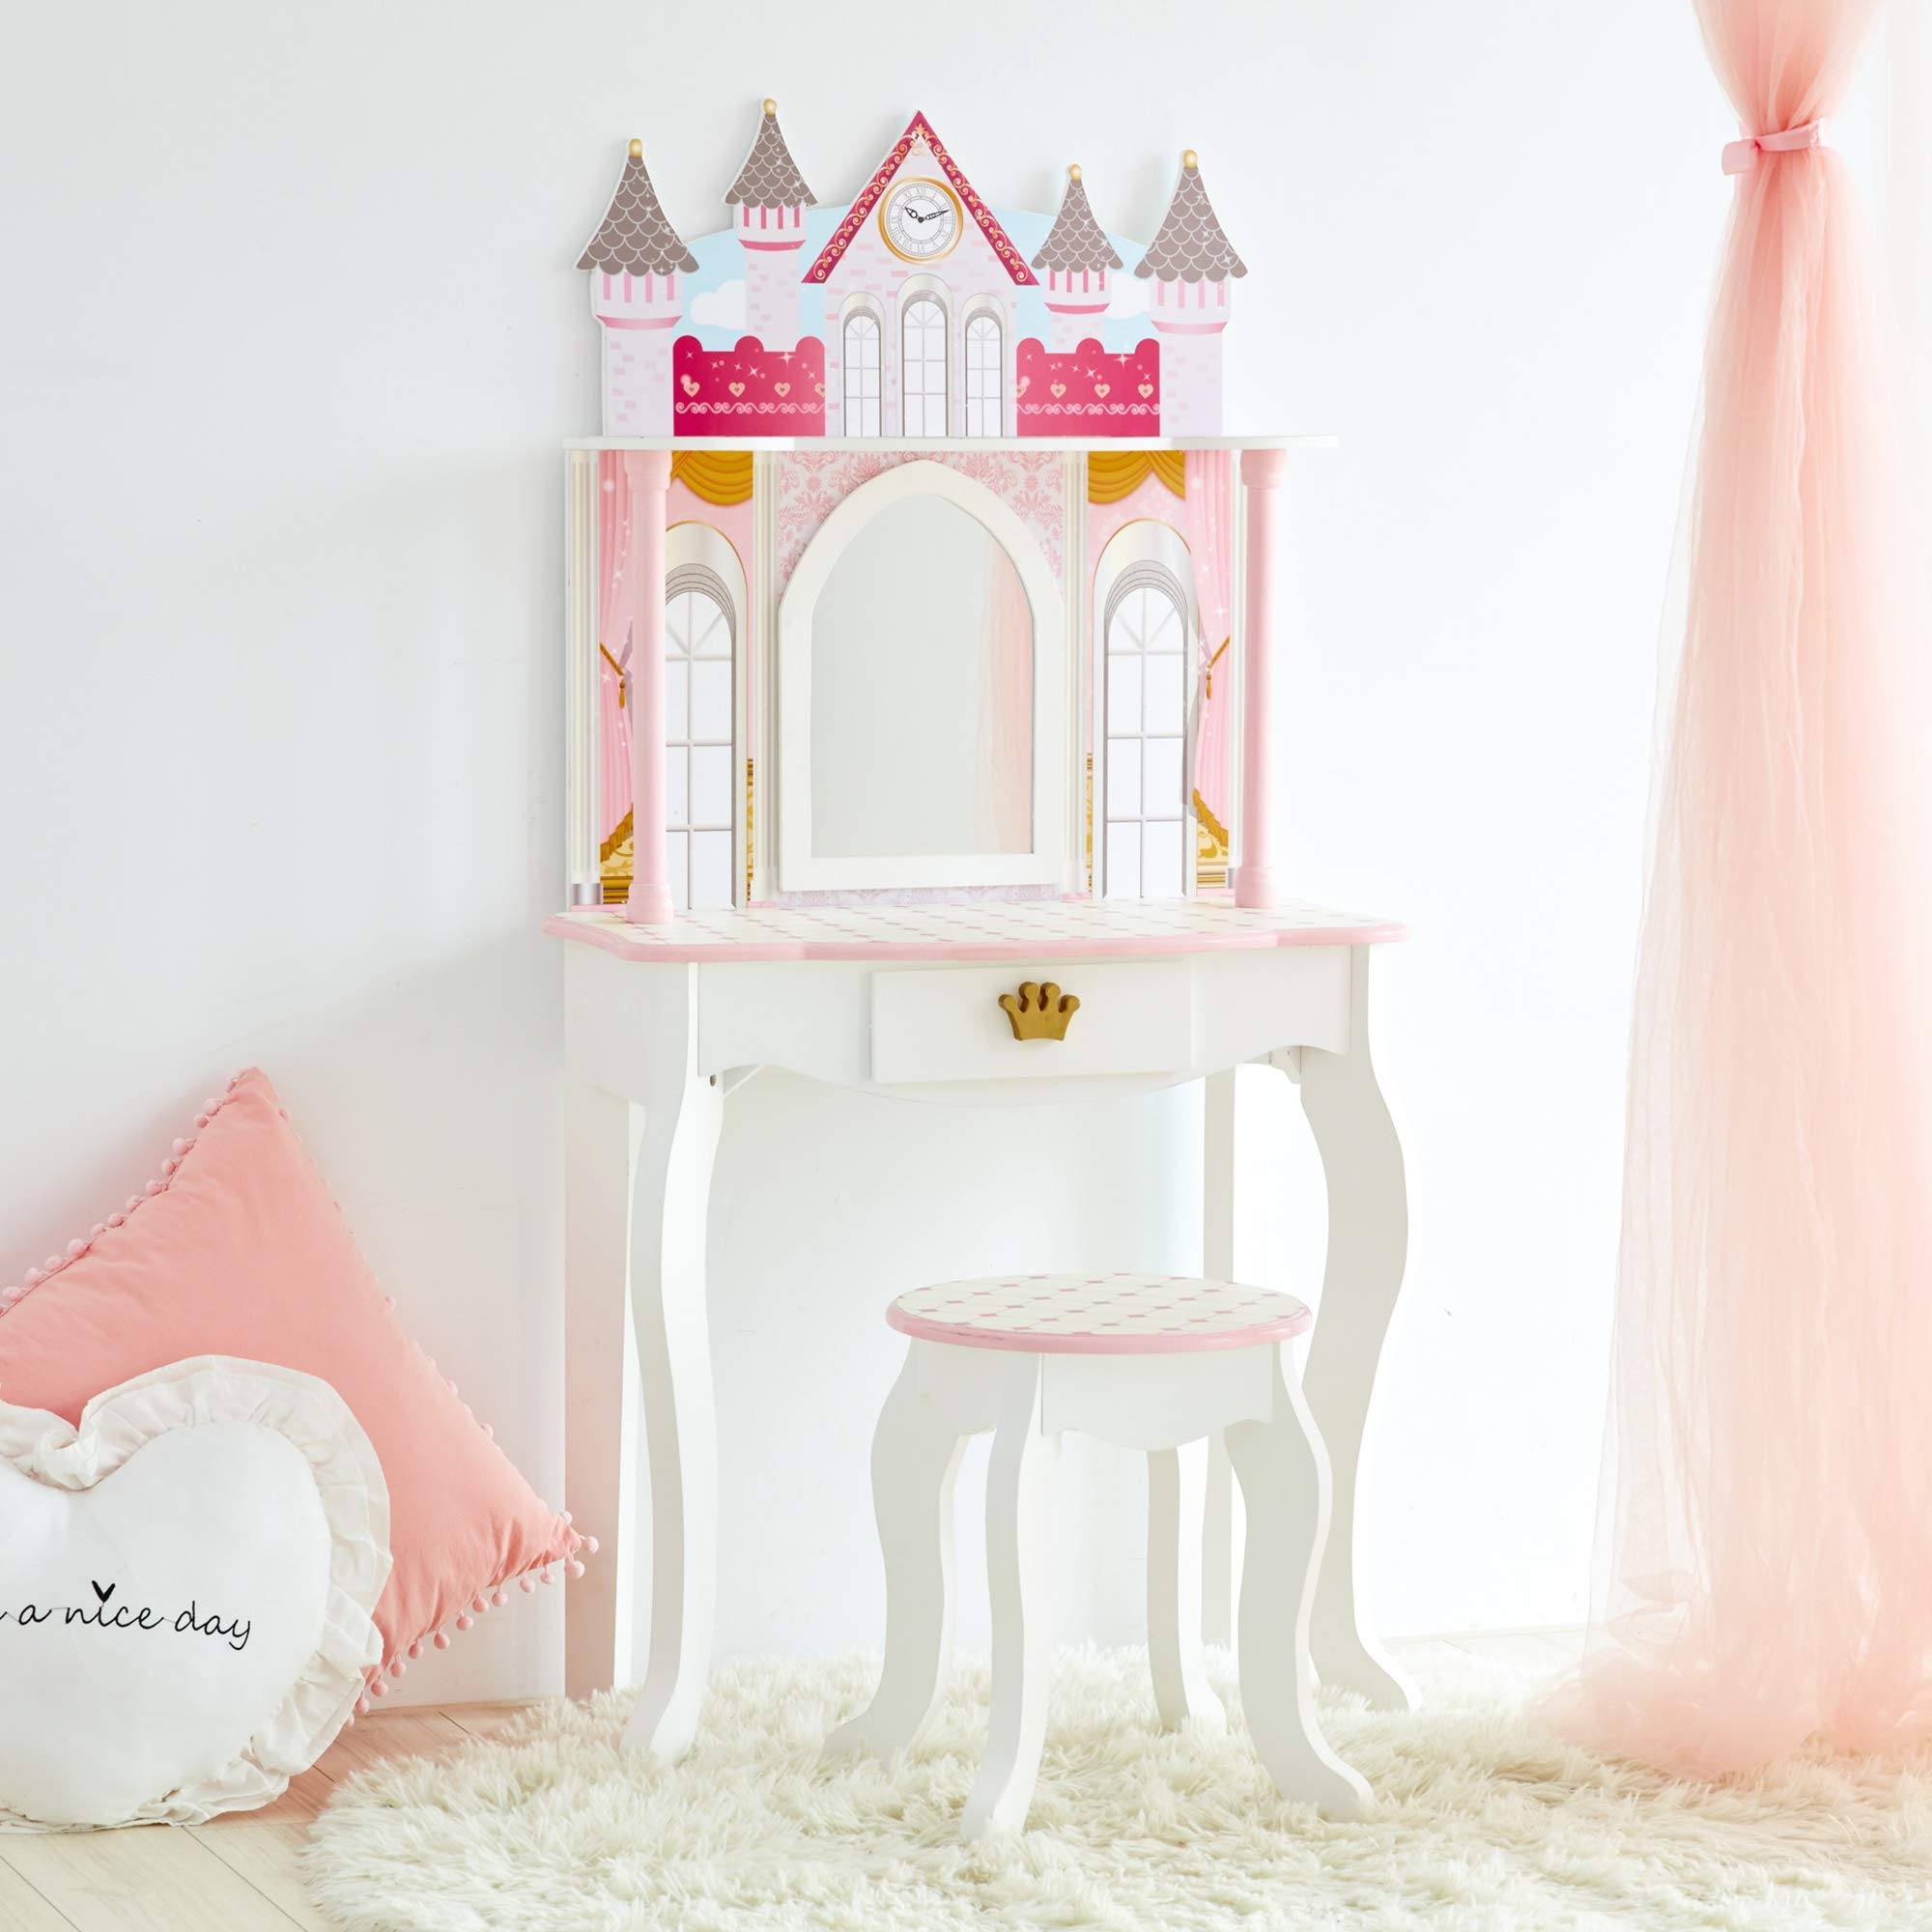 Teamson Kids - Dreamland Castle Kids Vanity, Wooden Vanity Table and Stool Set - White/Pink by Teamson Kids